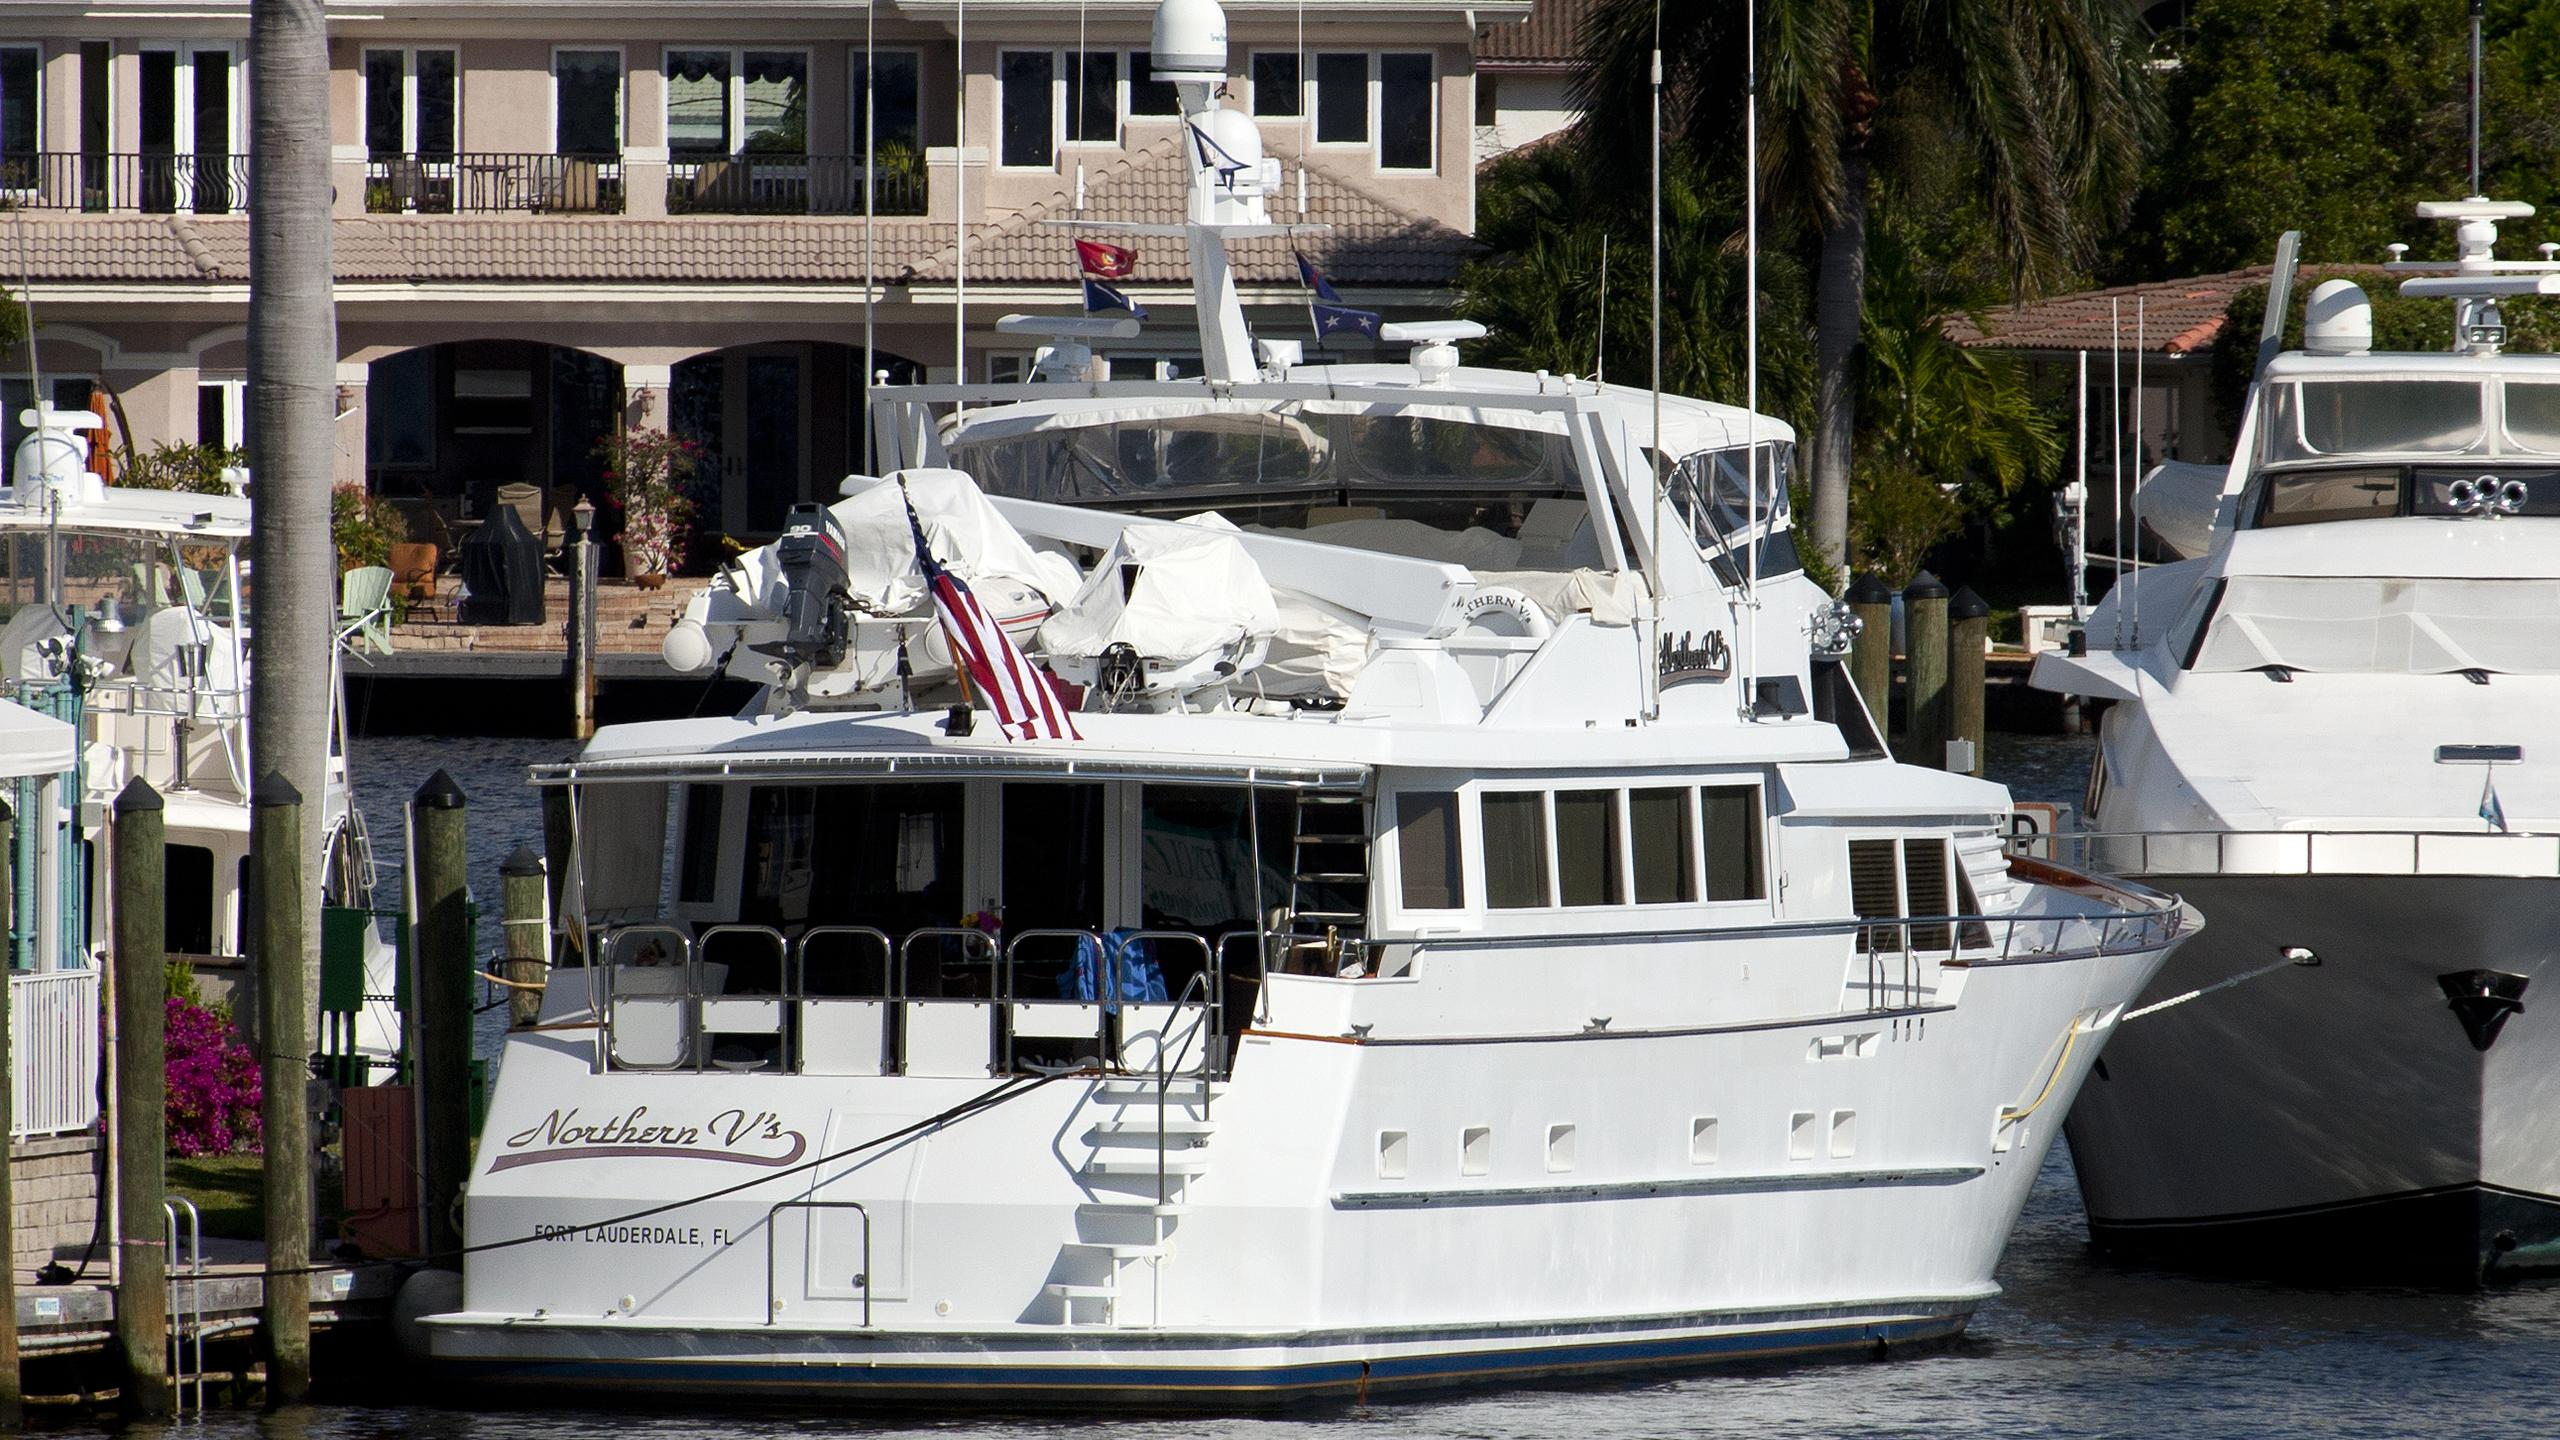 northern-vs-yacht-exterior